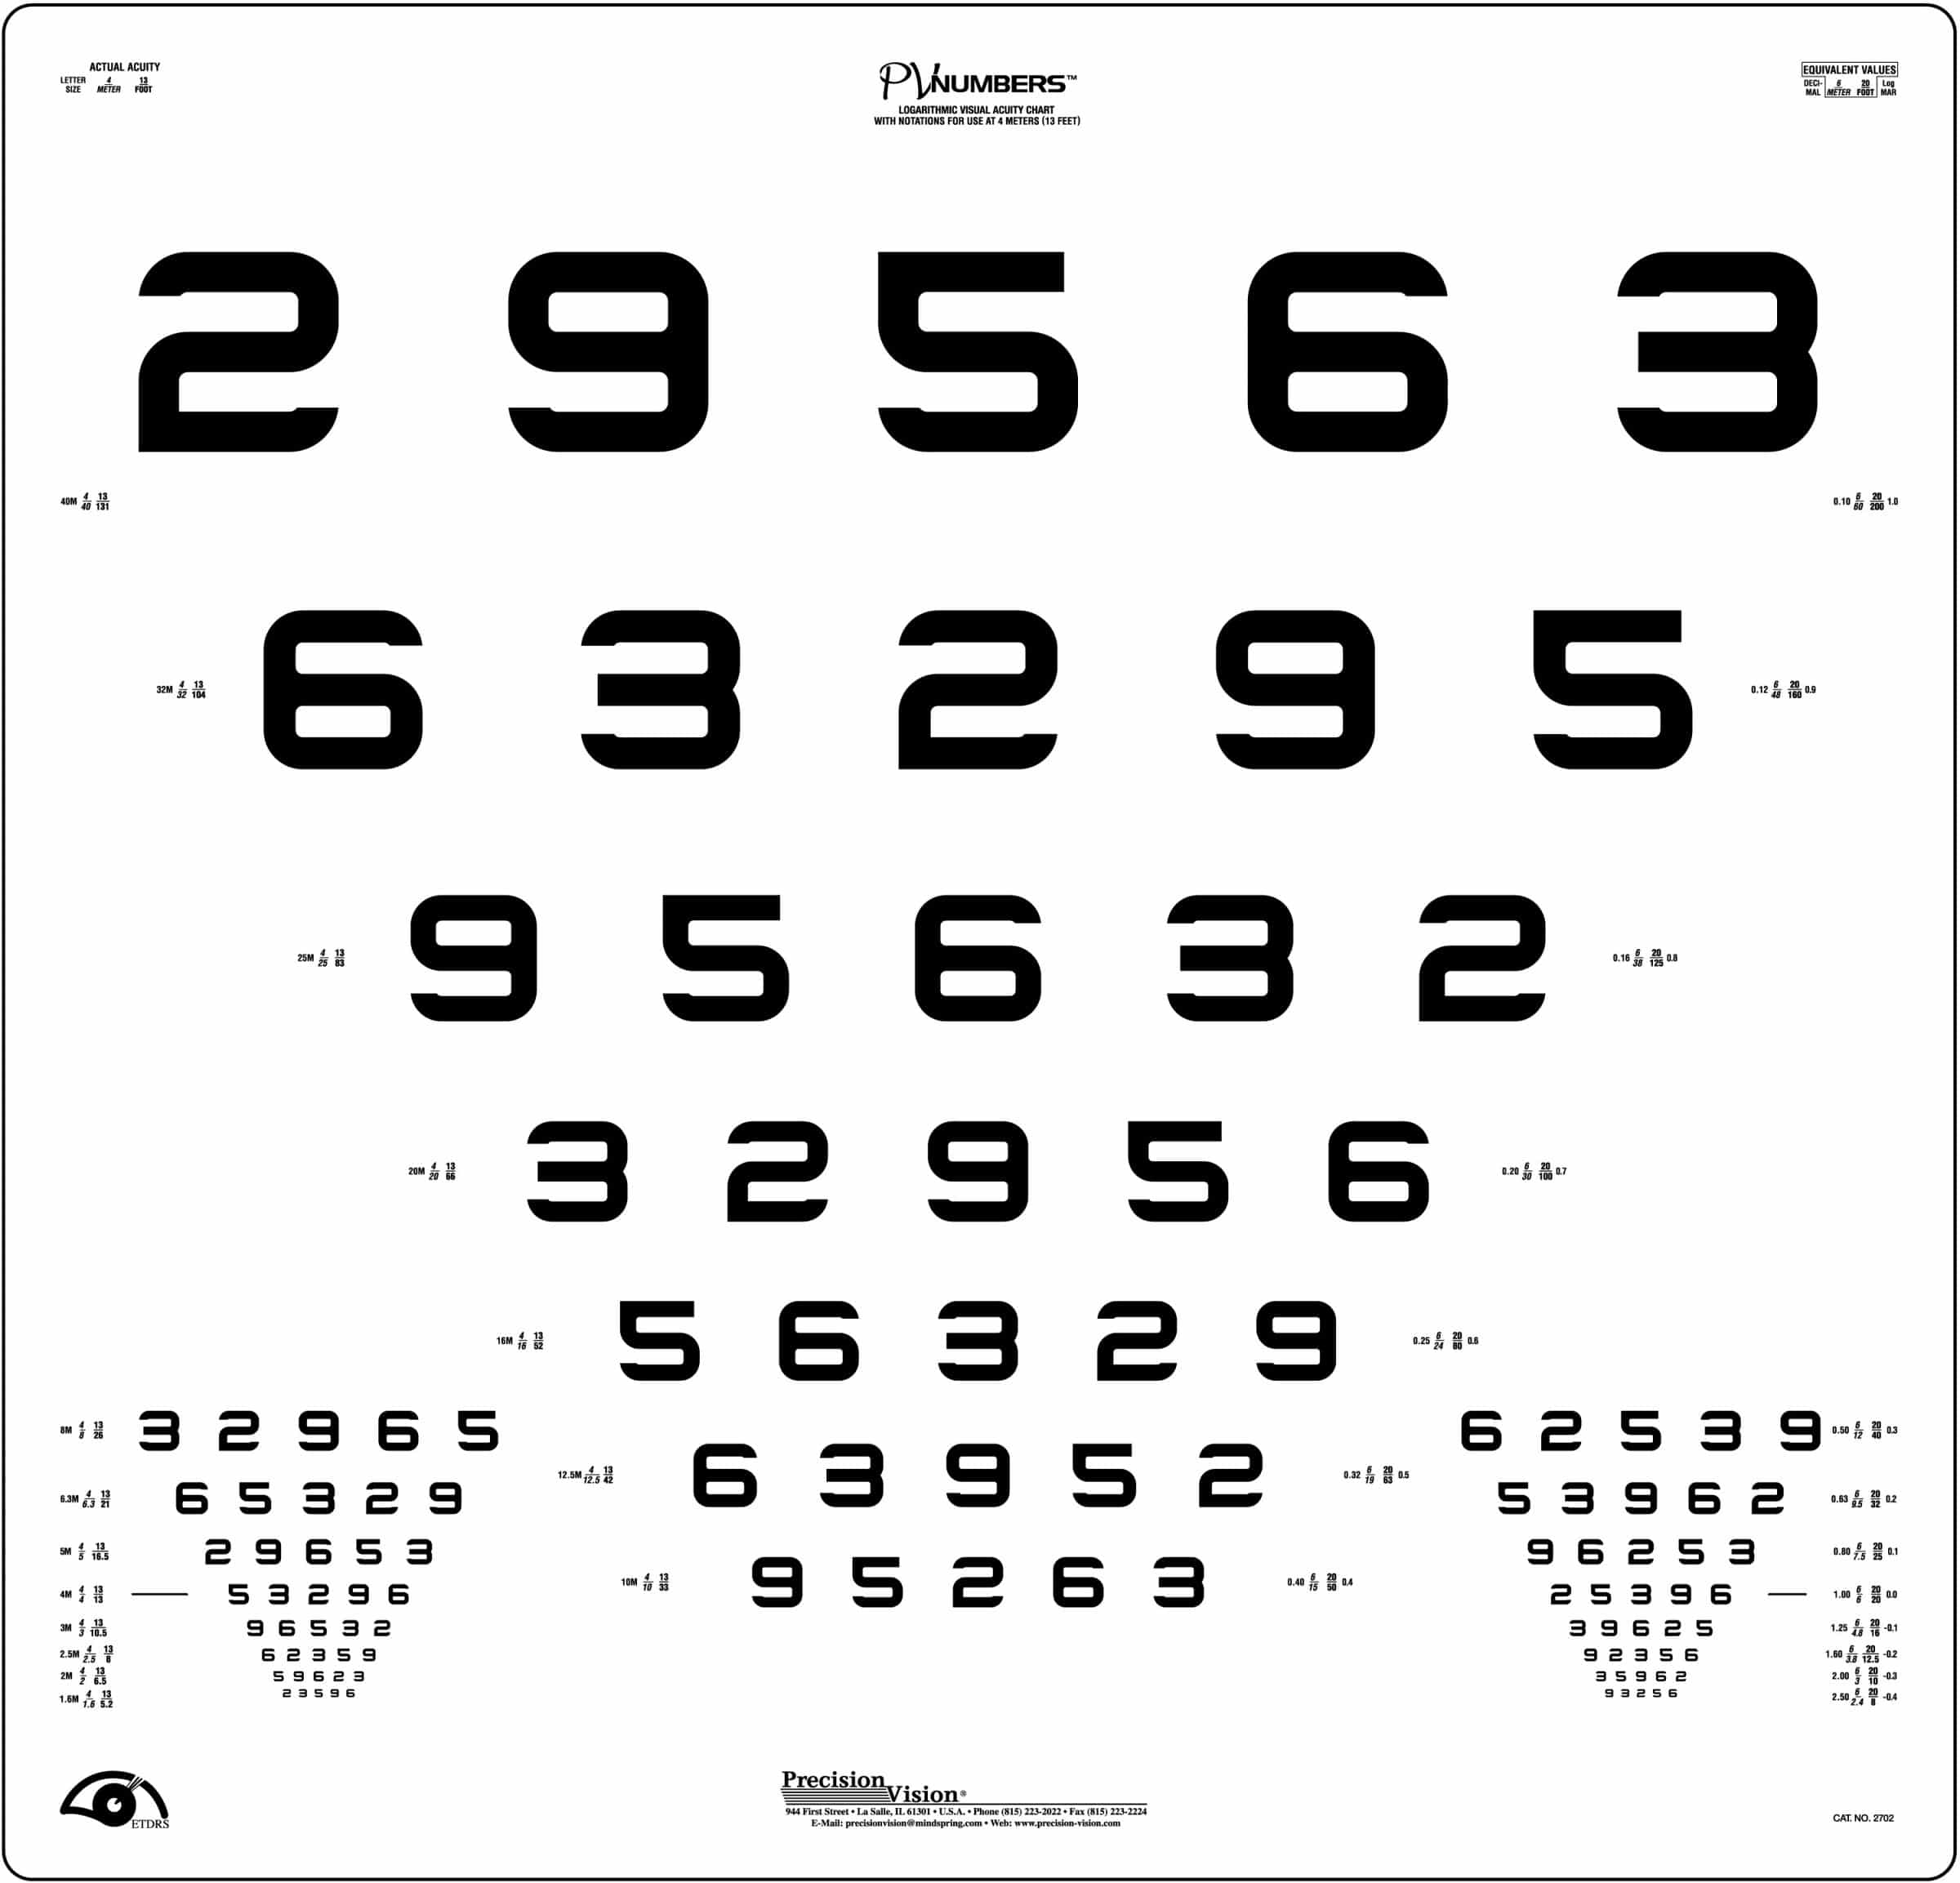 Pv numbers acuity chart for 4 meters precision vision